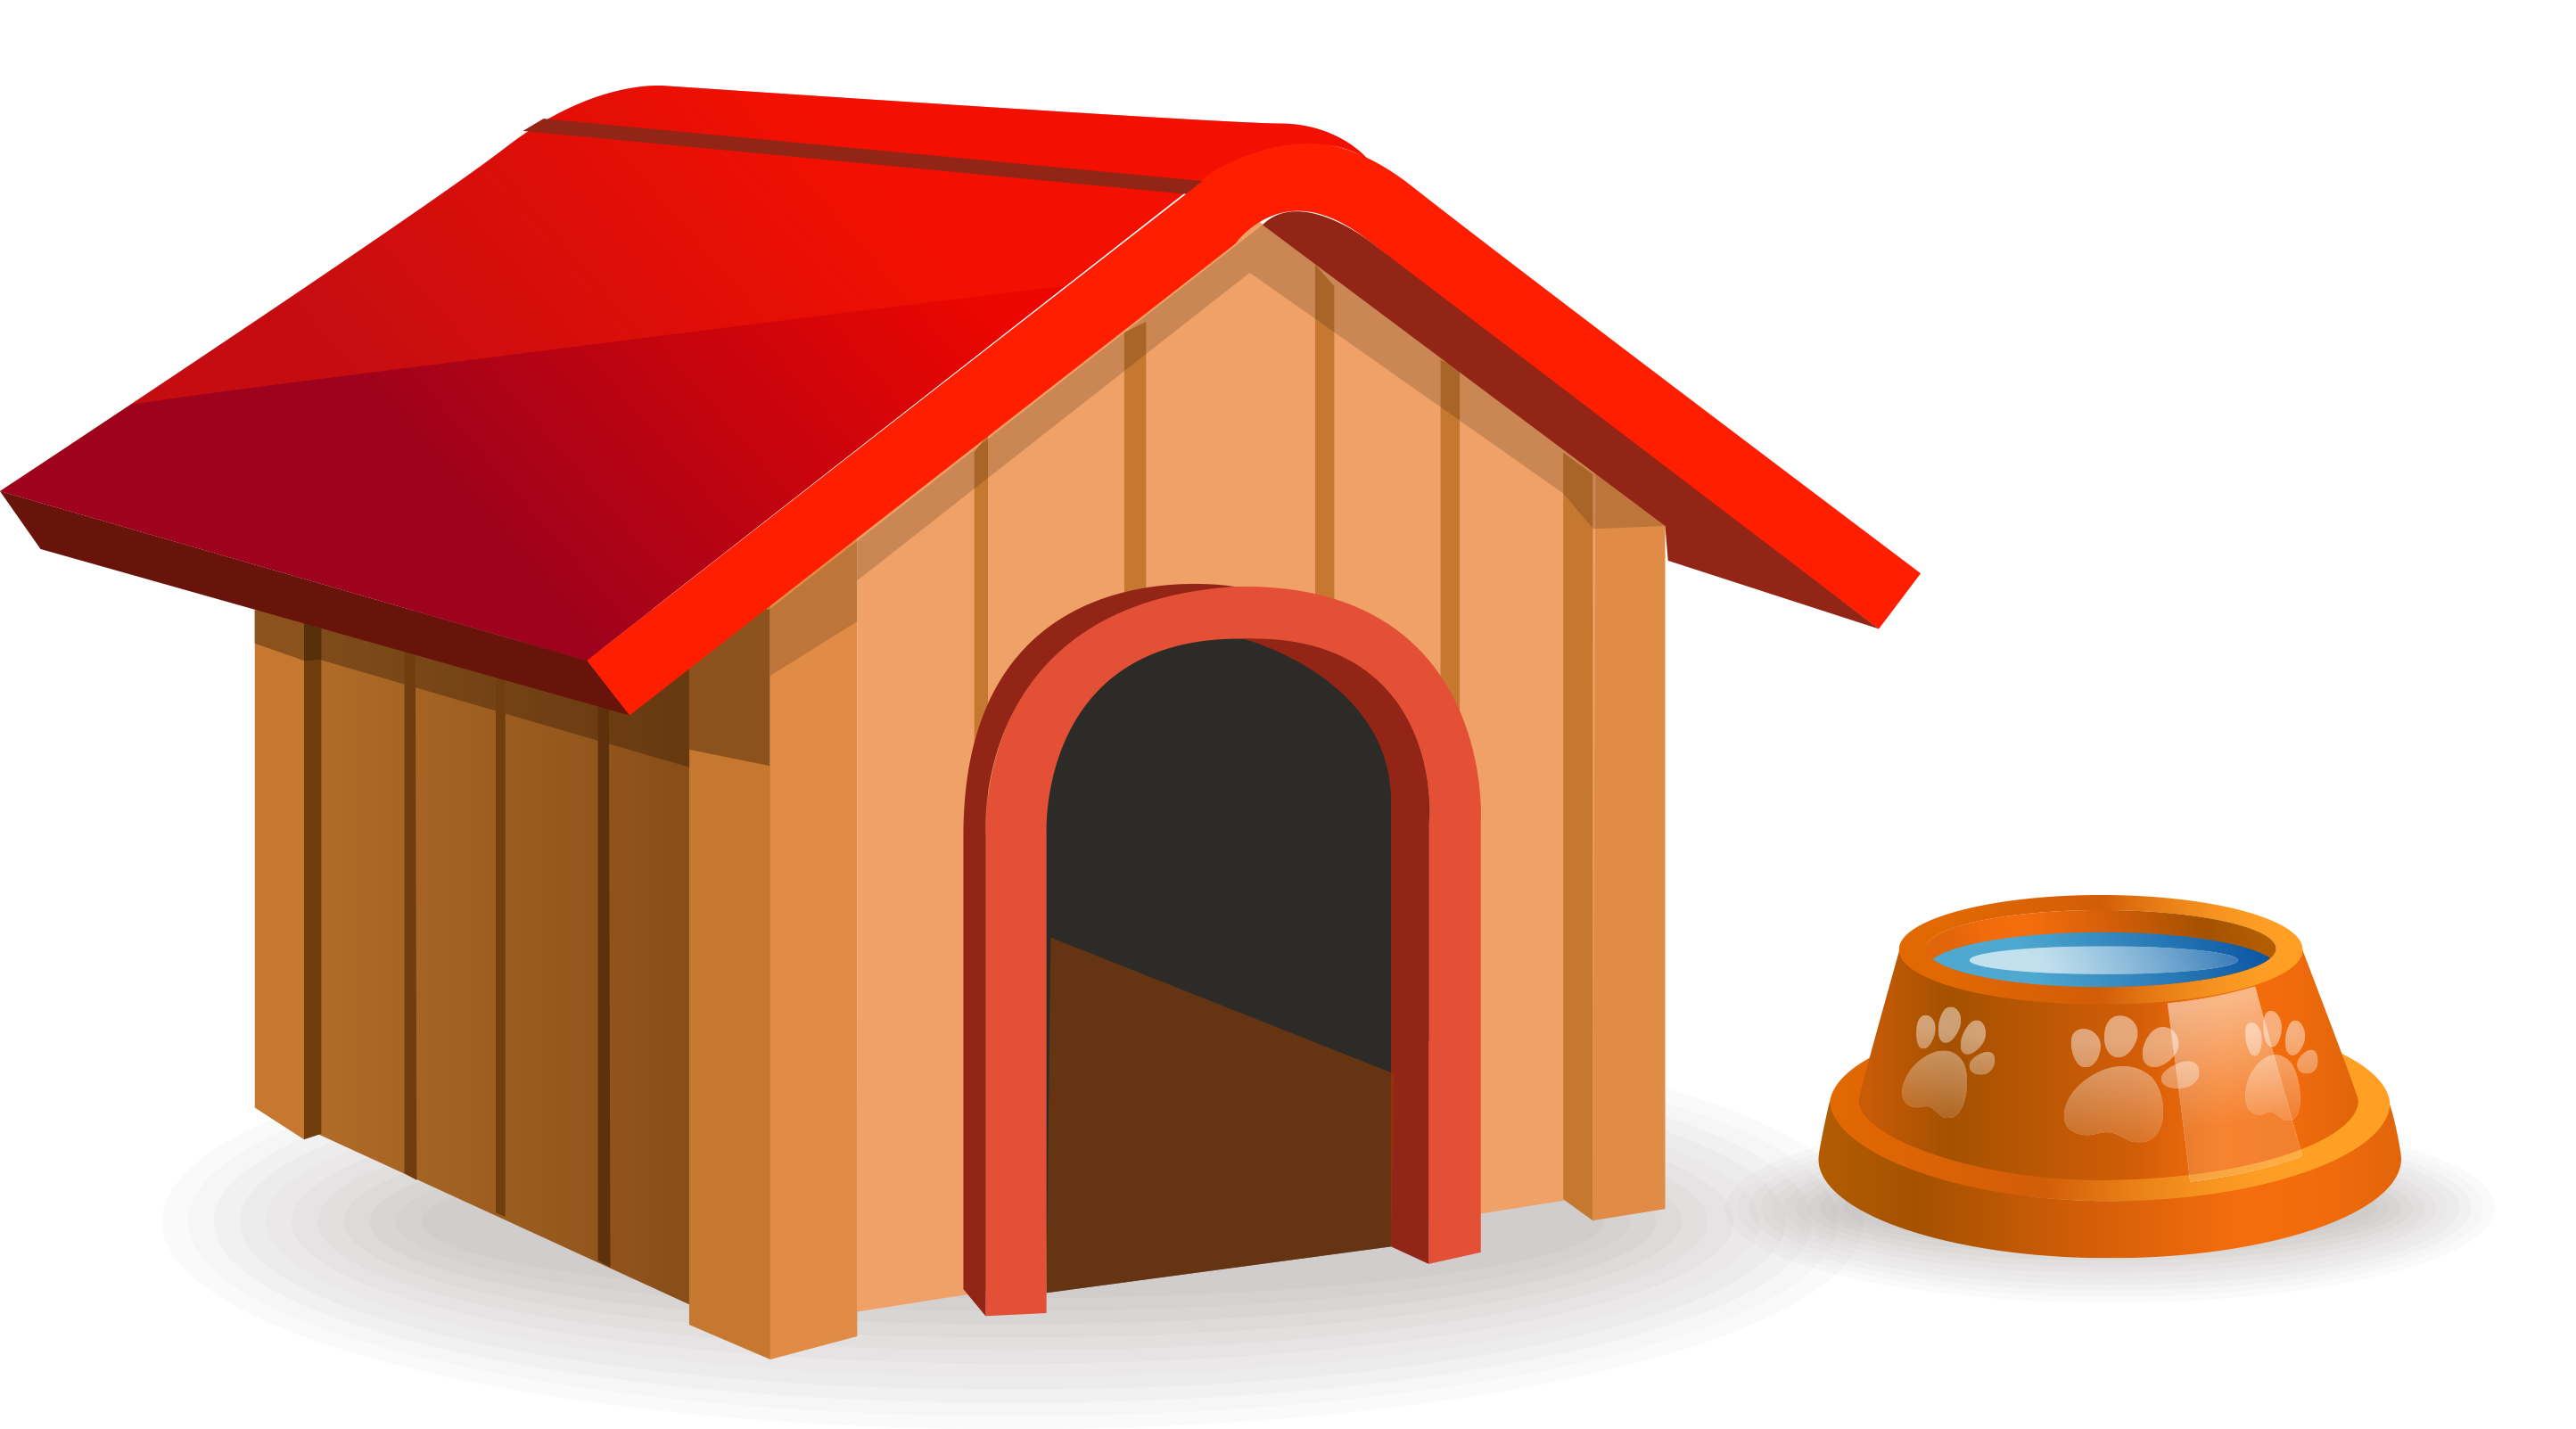 Doghouse clipart niche, Doghouse niche Transparent FREE for download.